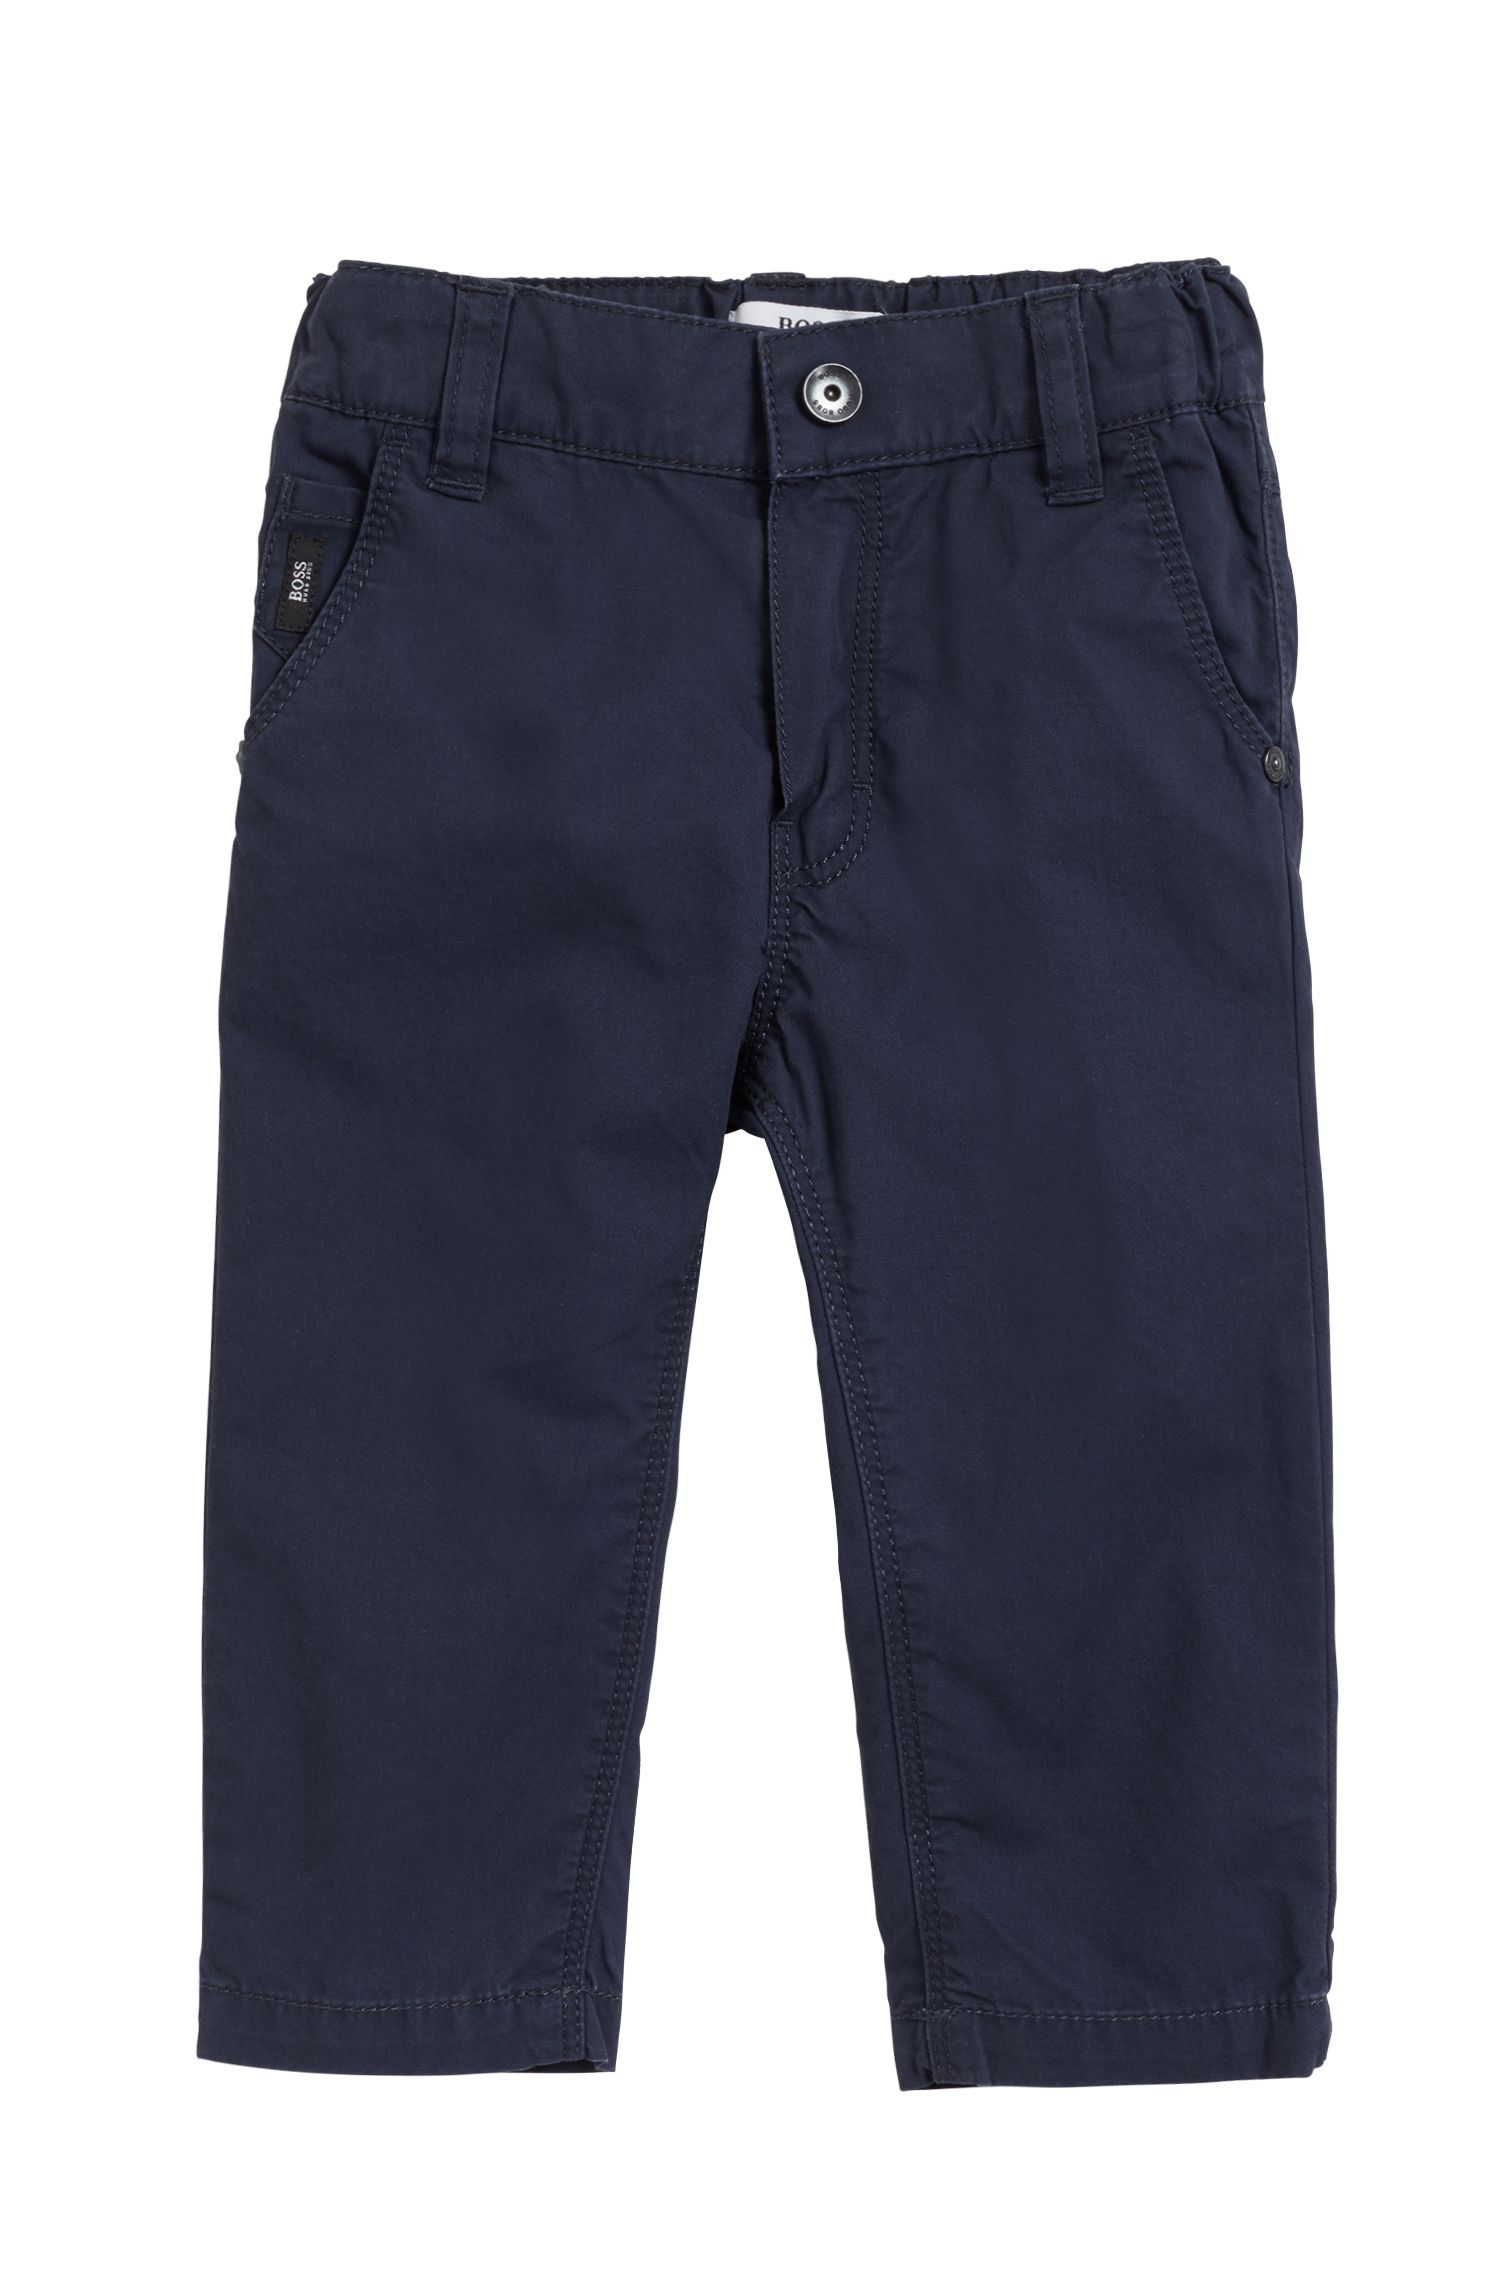 Kids' trousers in pure cotton twill